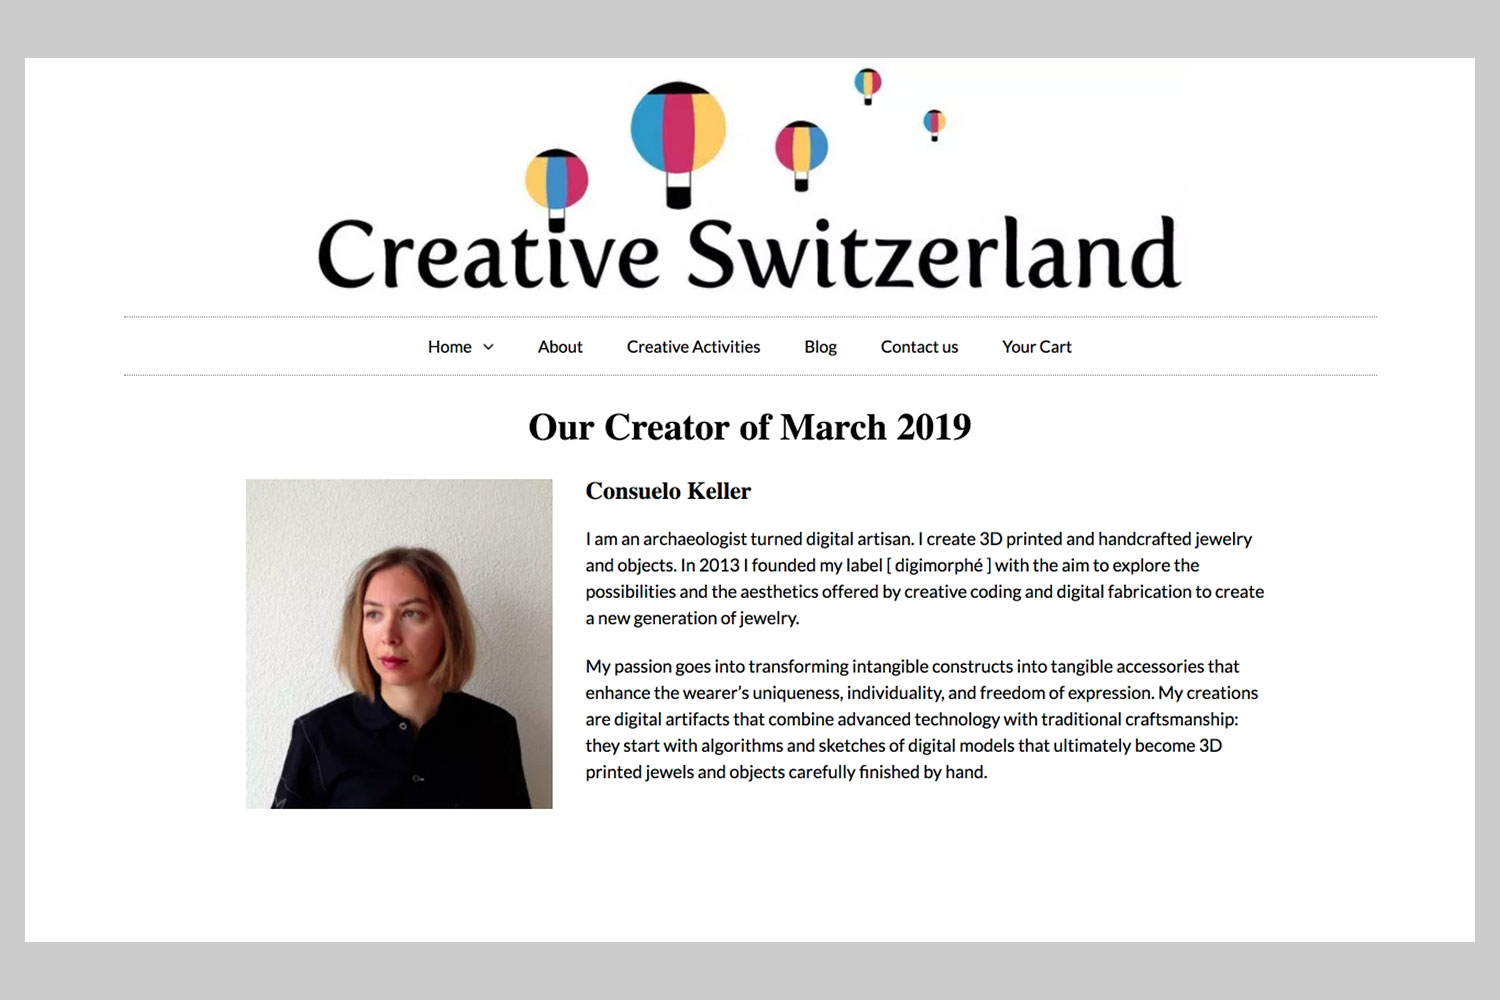 Creative Switzerland, 1-3-2019